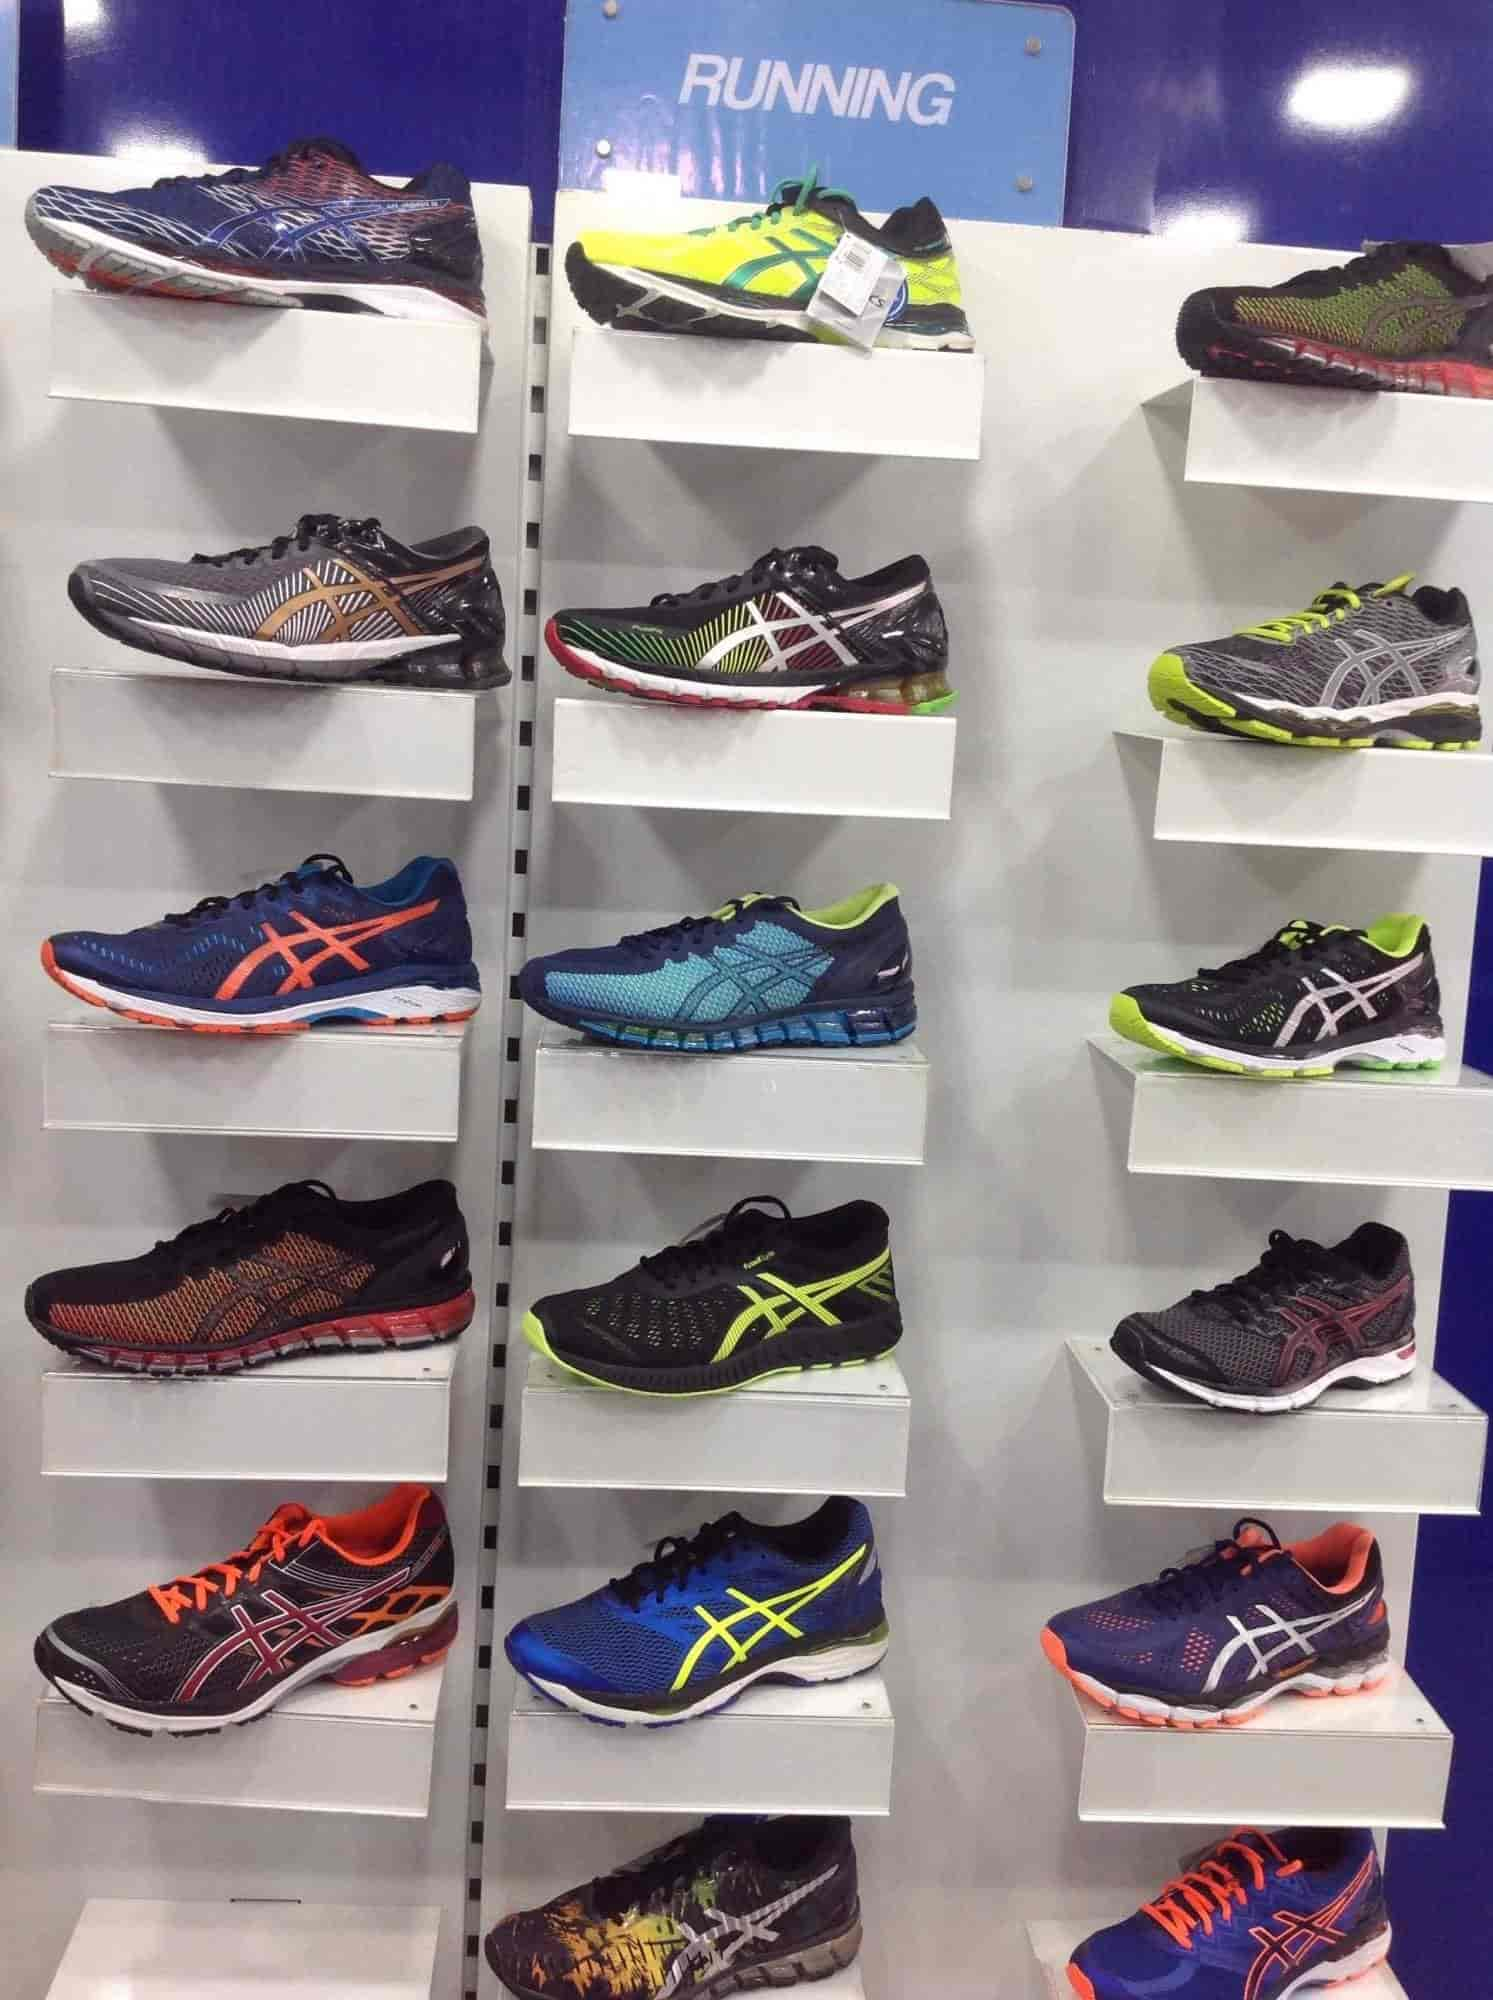 asics shoes hyderabad biryani chennai express restaurant 671653